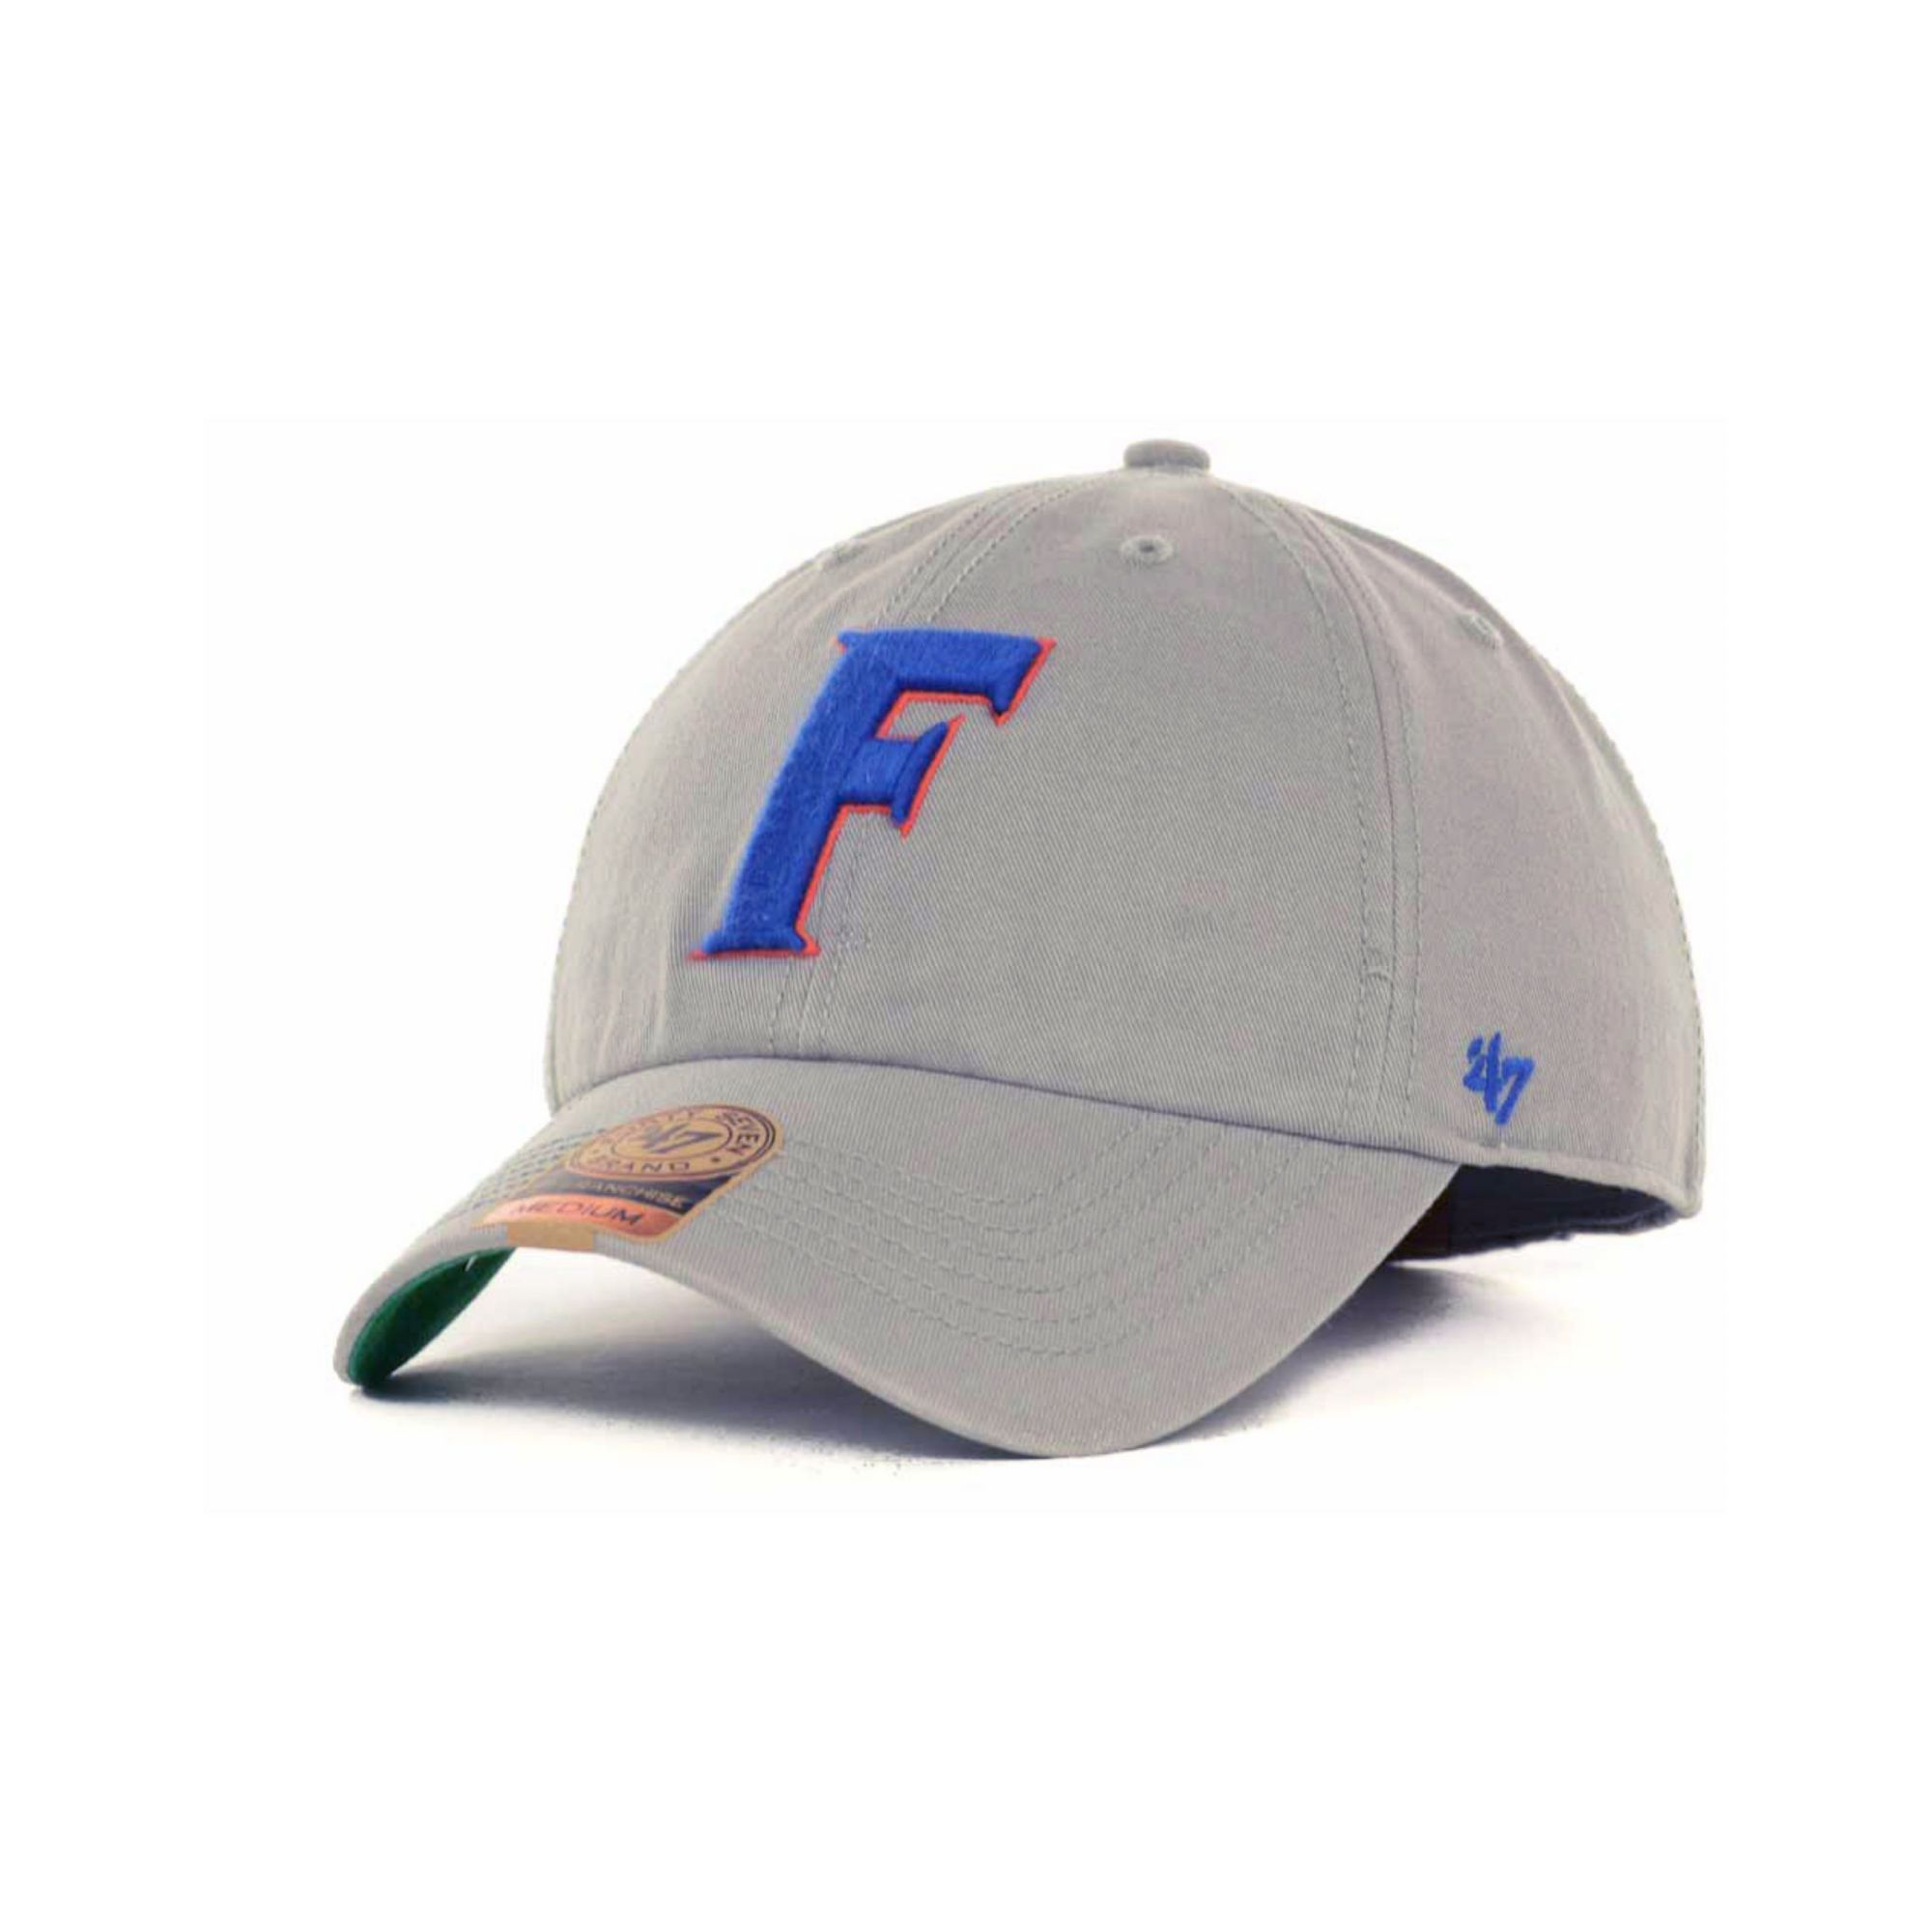 new style 0a978 042c8 47 Brand Florida Gators Ncaa 47 Grey Franchise Cap in Gray for Men ...